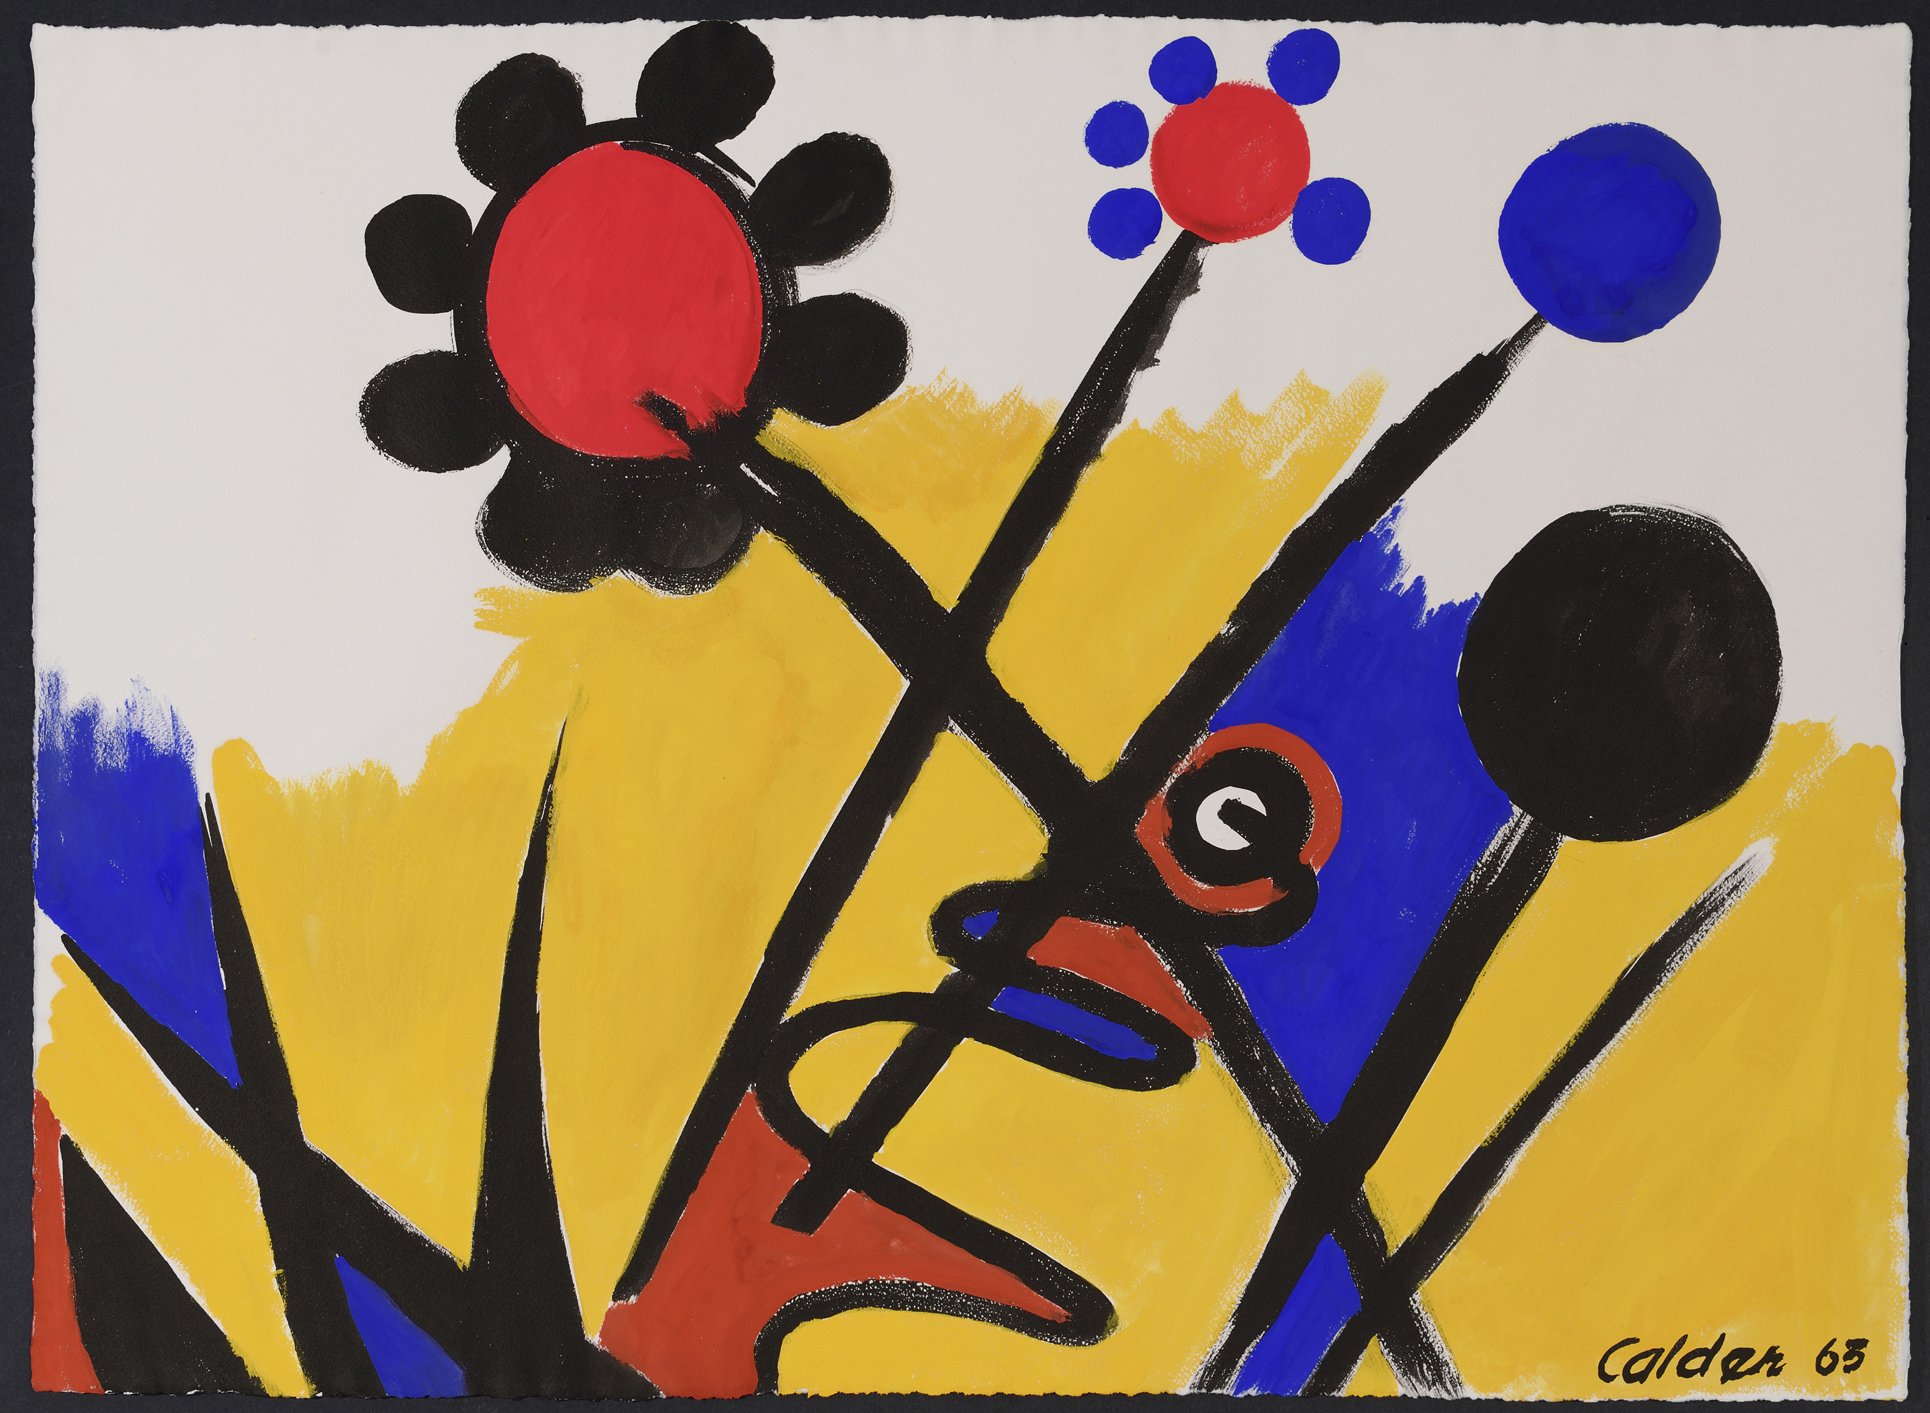 Alexander Calder ,  Black and Blue Petals , 1963, gouache on paper, 22 1/2 x 31 inches